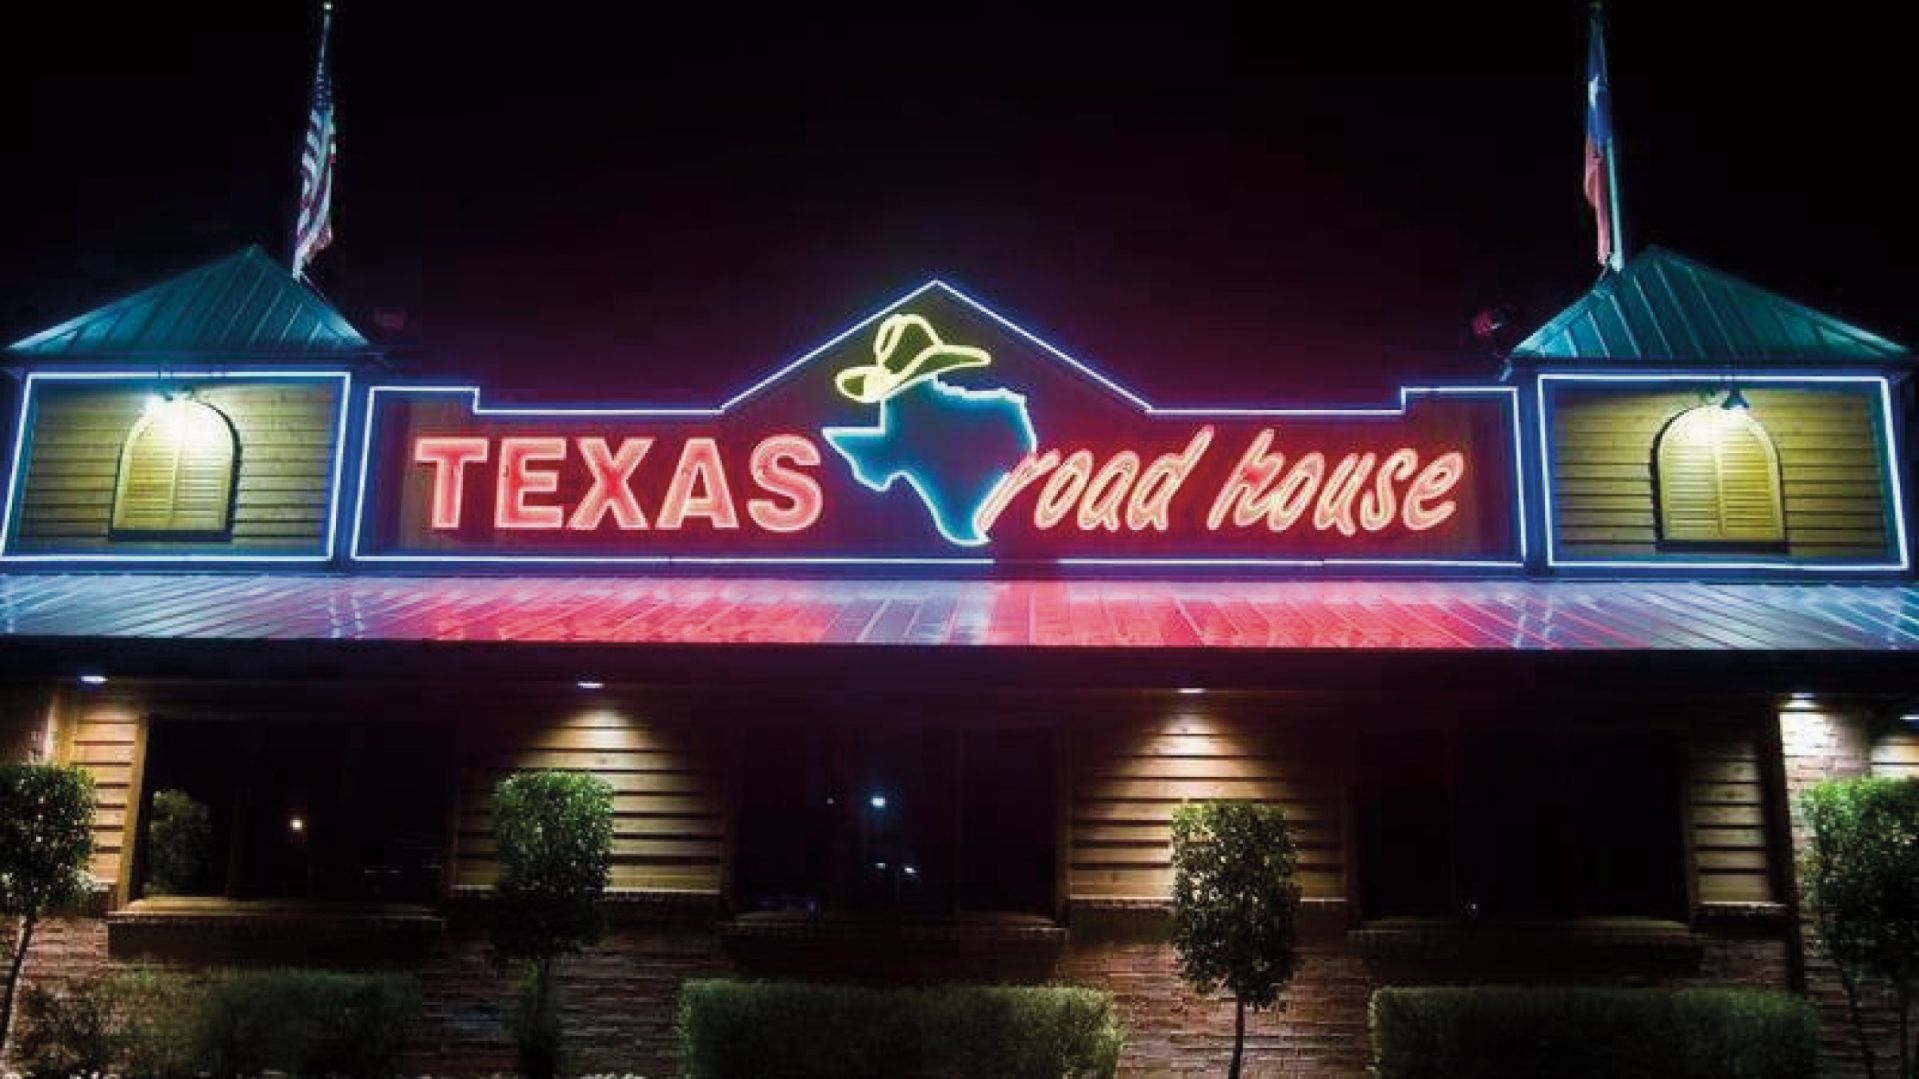 Texas roadhouse sign up